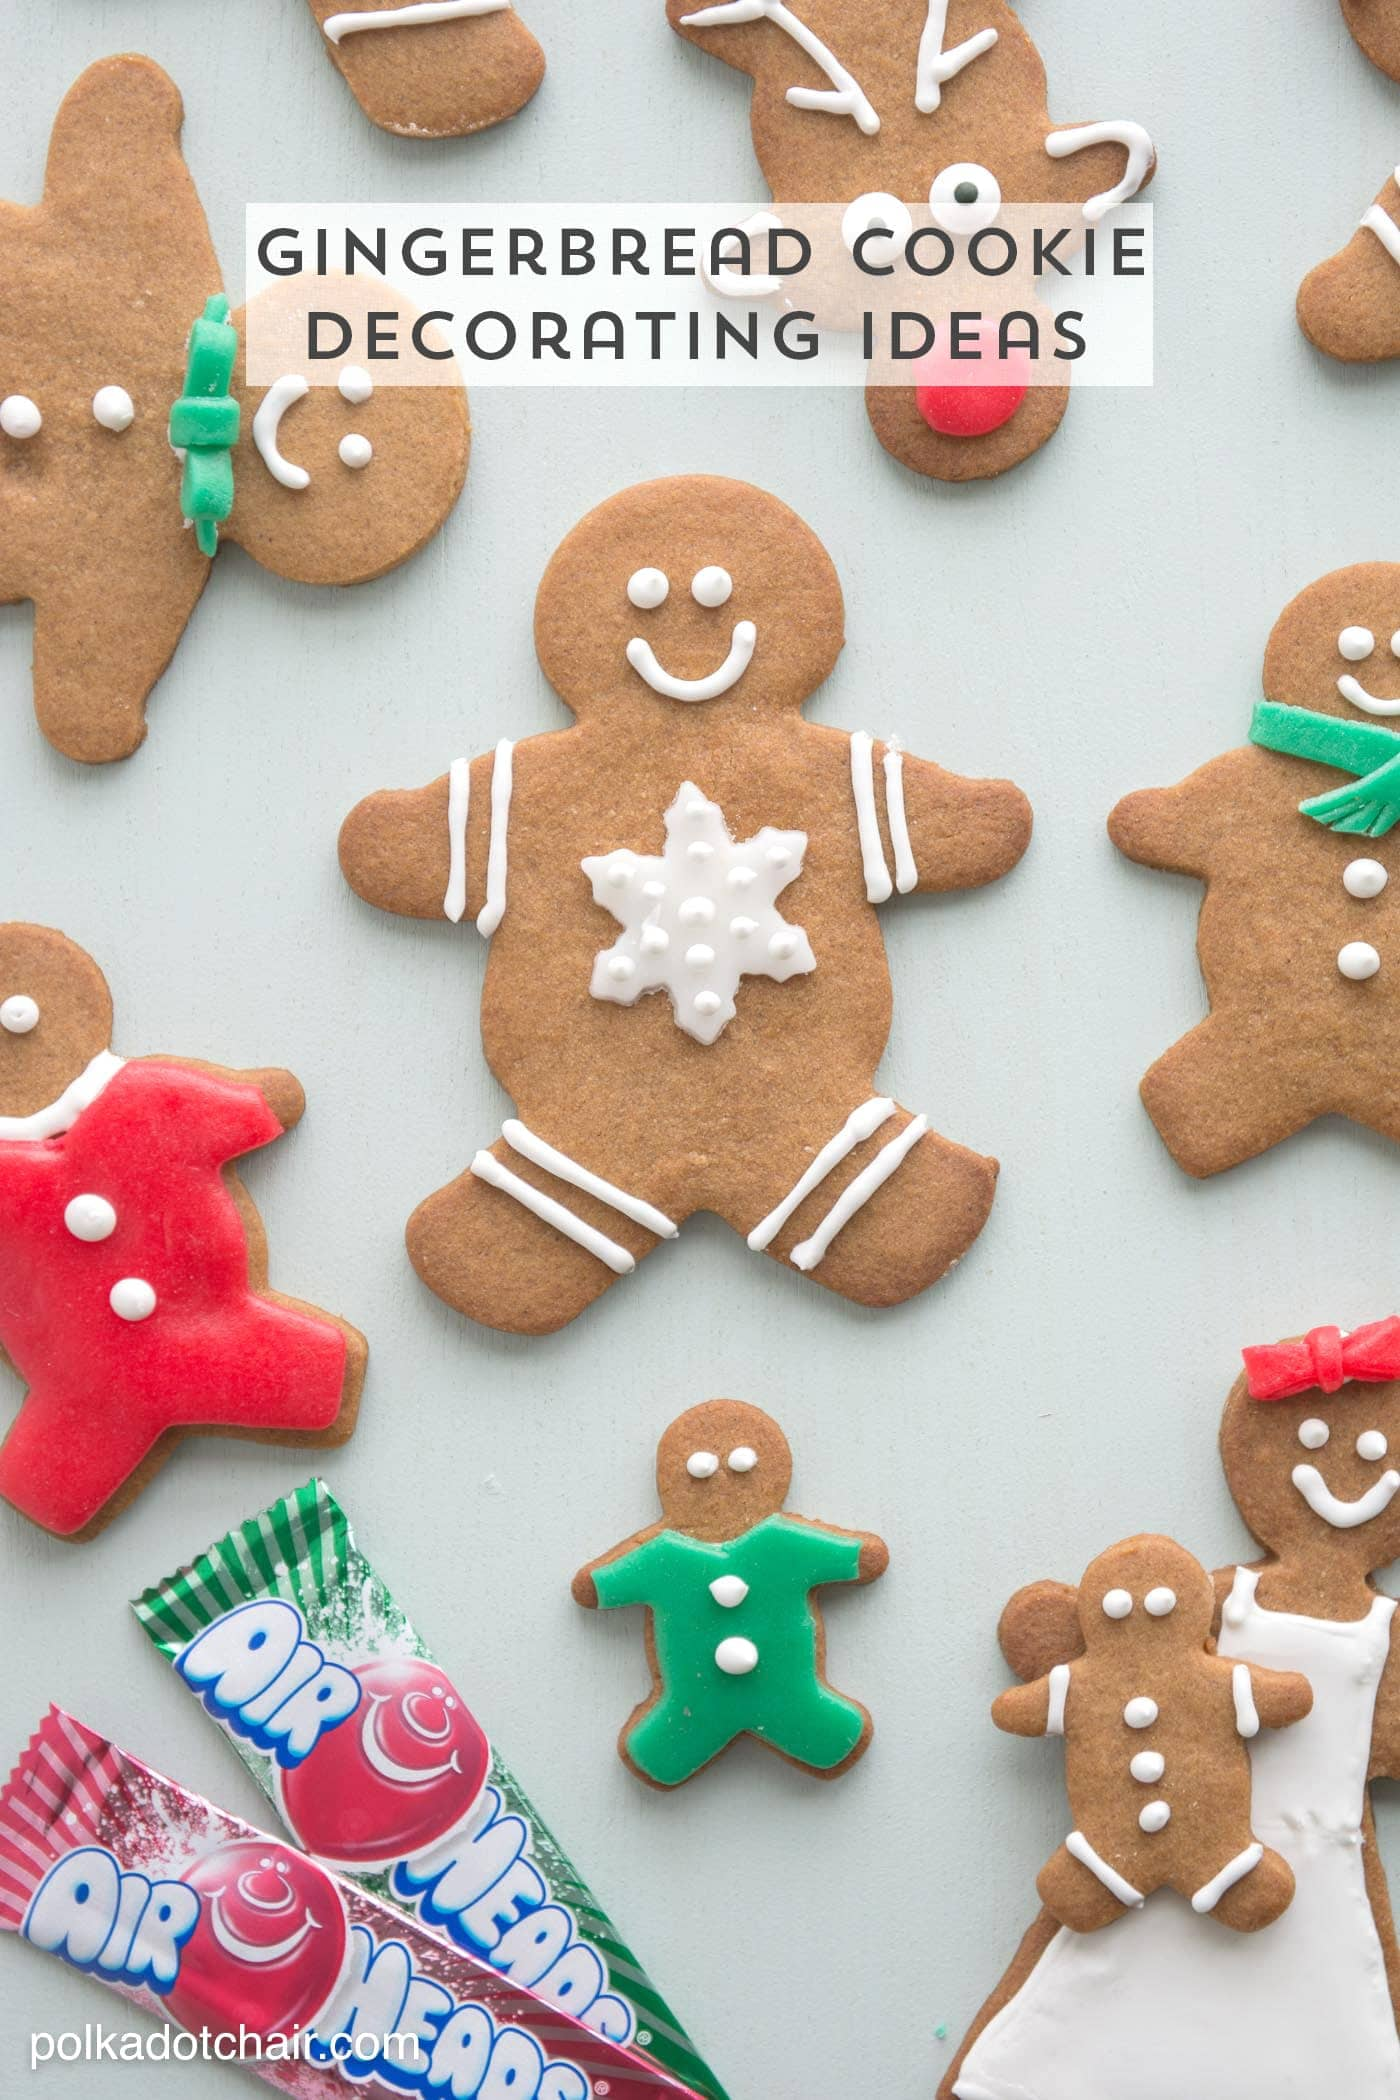 Tremendous Gingerbread Cookie Decorating Ideas The Polka Dot Chair Easy Diy Christmas Decorations Tissureus